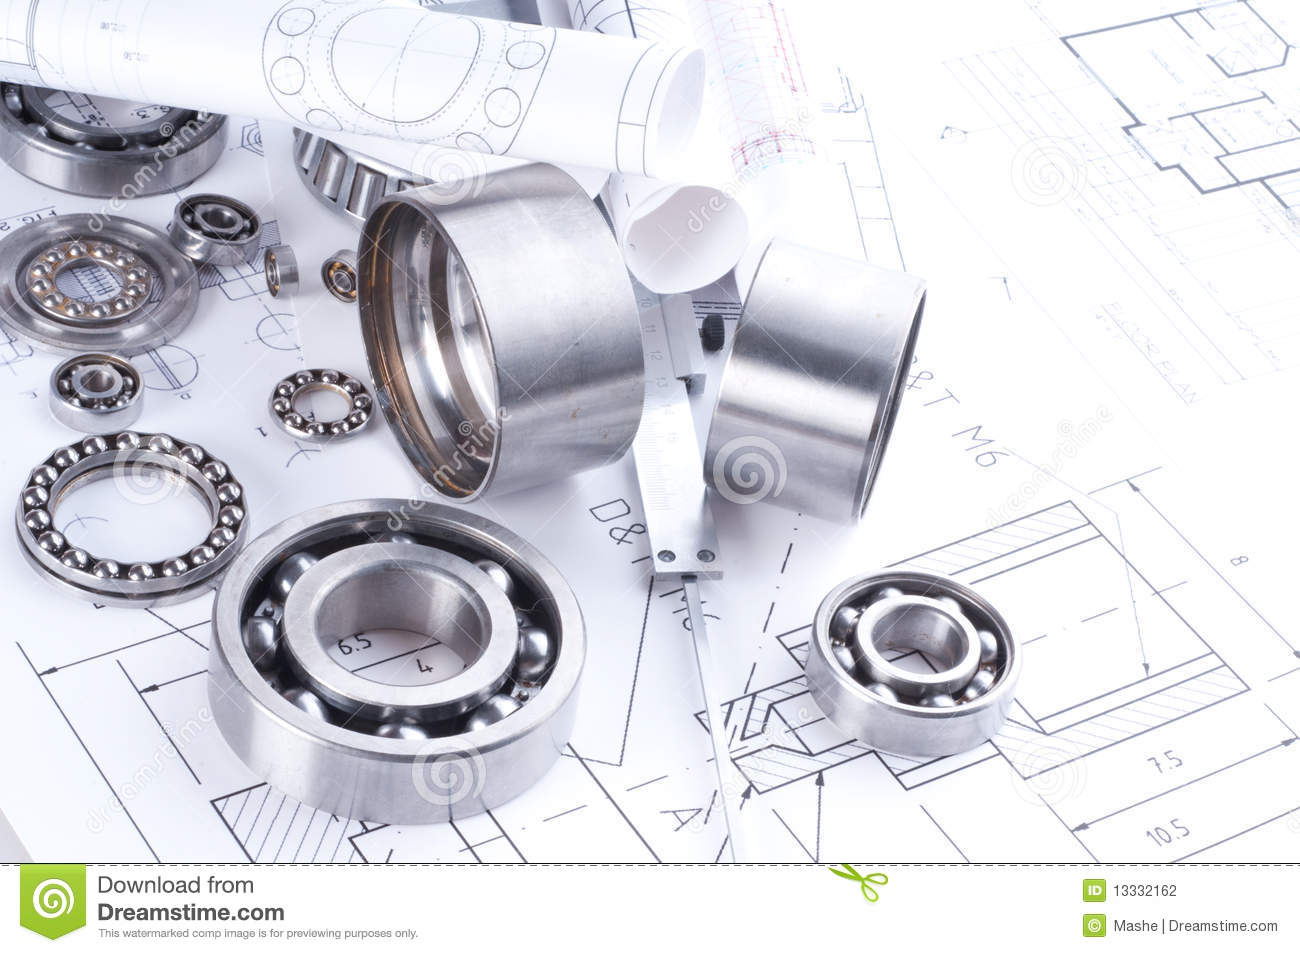 Outils de construction photographie stock image 13332162 for Outil de construction